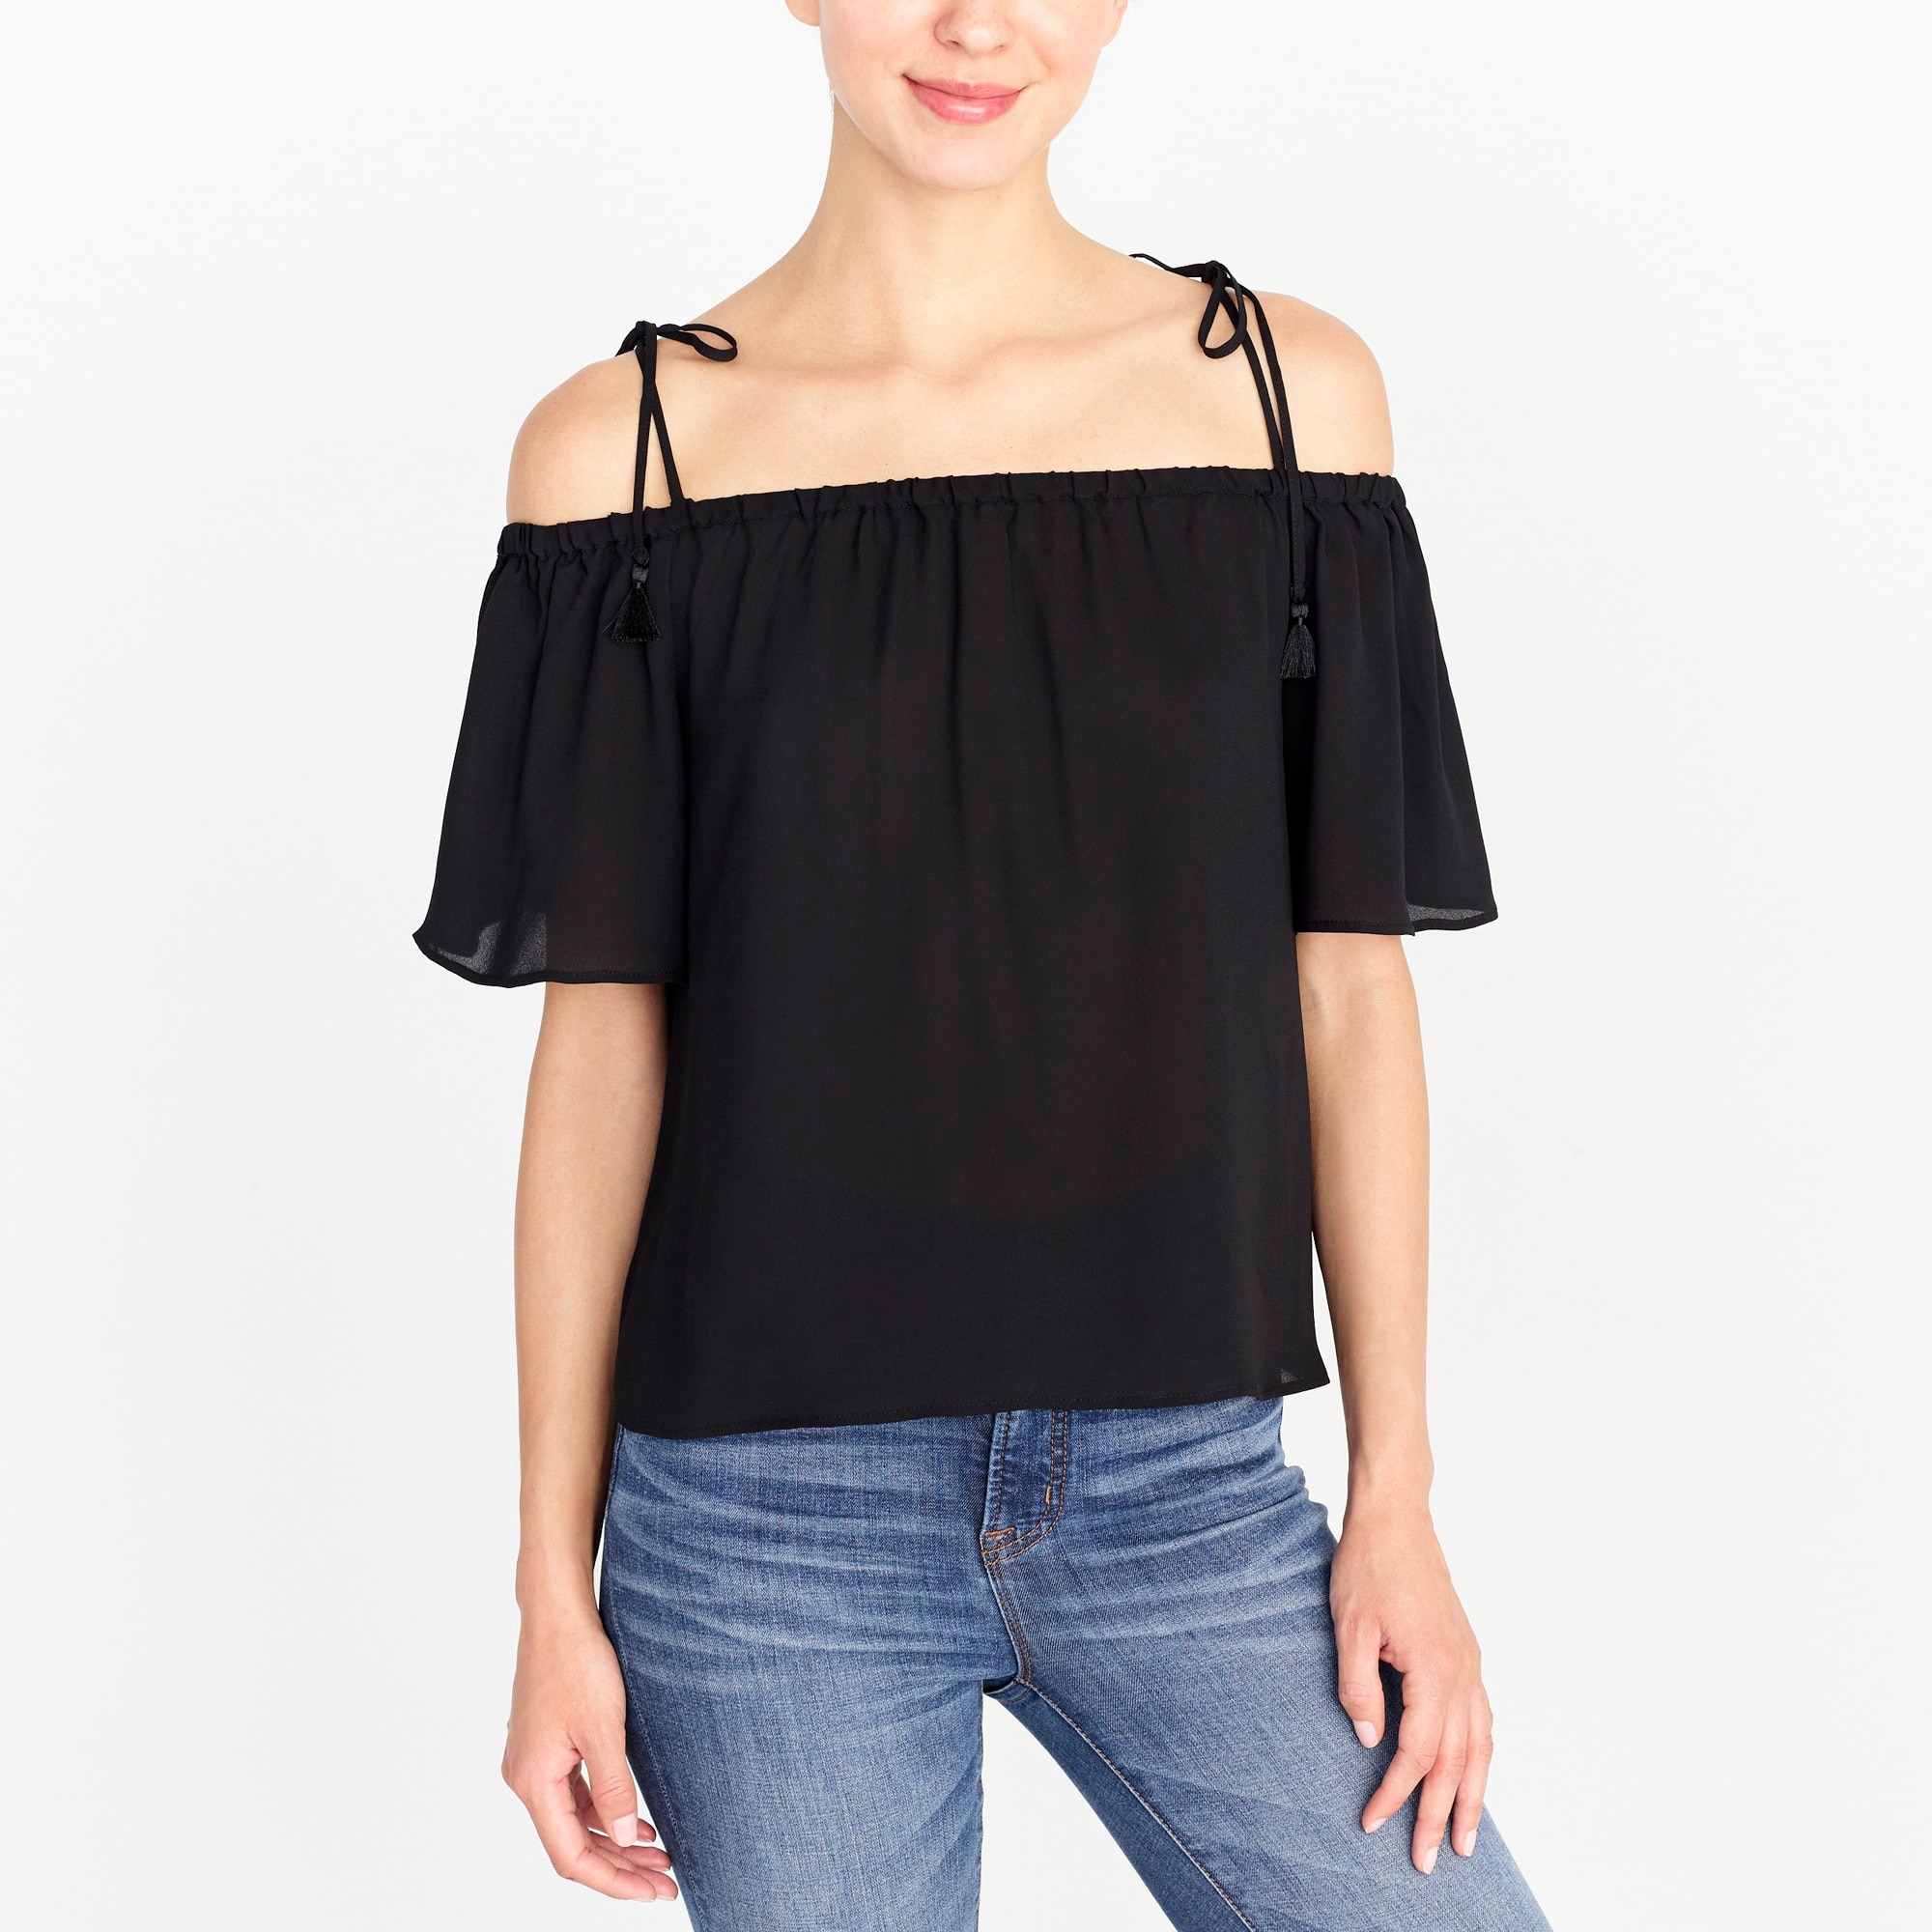 Image 1 for Tie cold-shoulder top